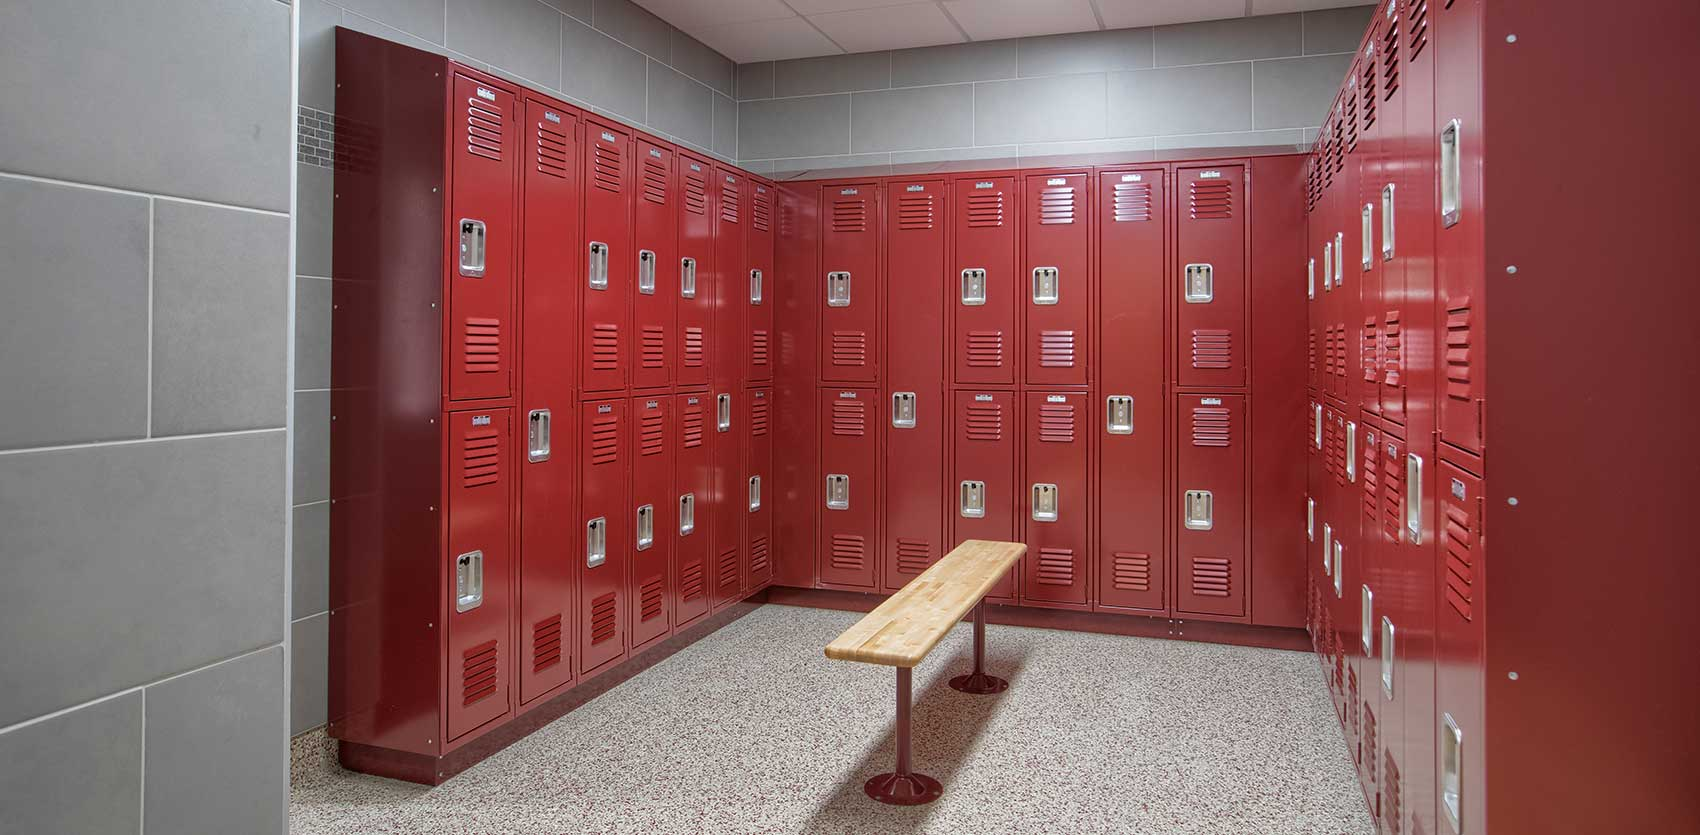 Council_Bluffs_Army Reserve Center Locker Room